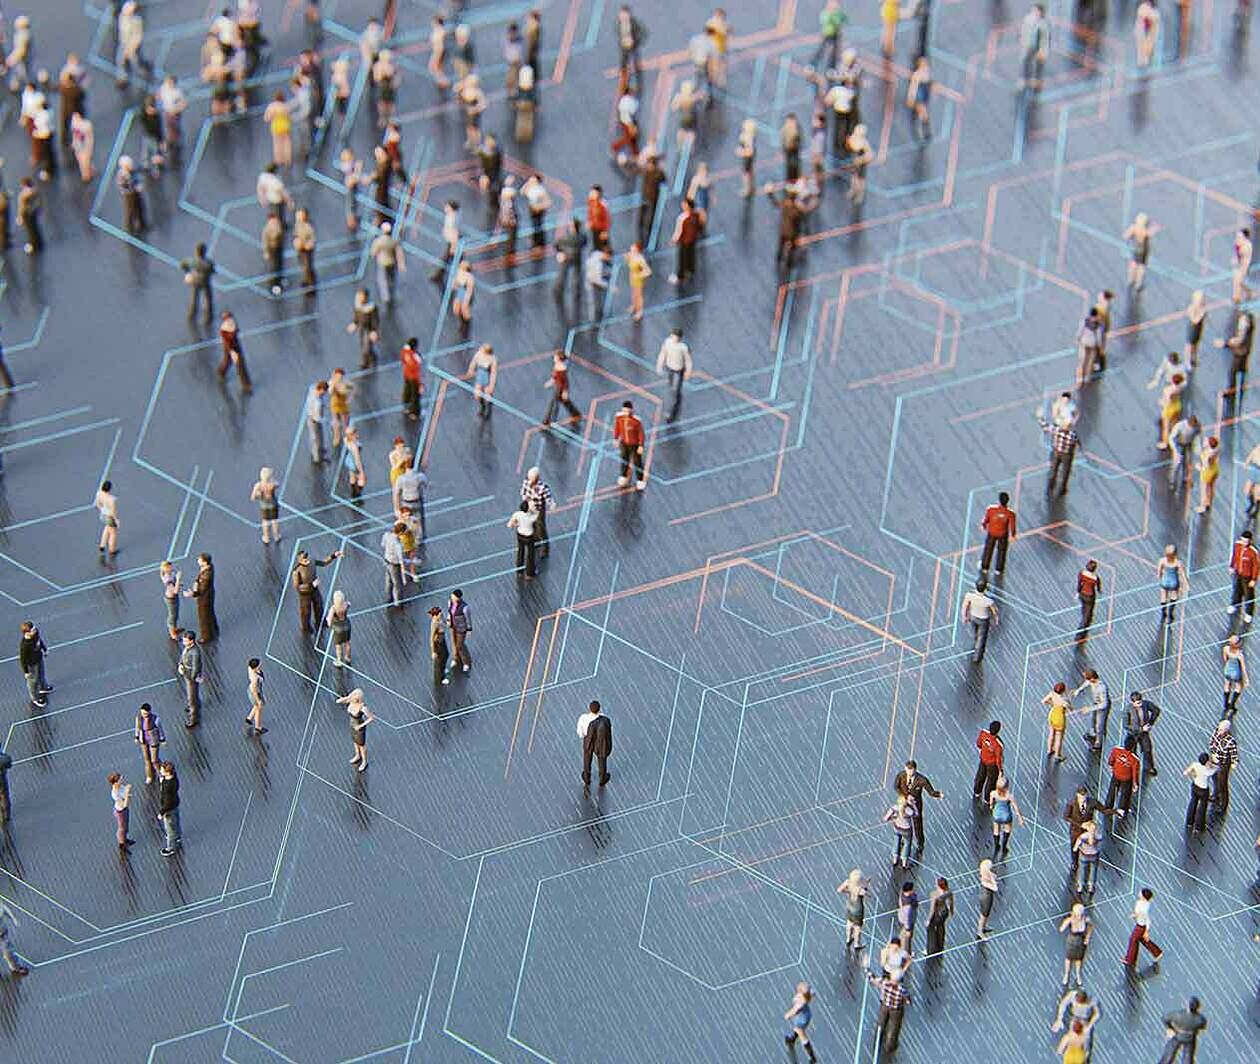 Social Network Analysis: The Networks Connecting People